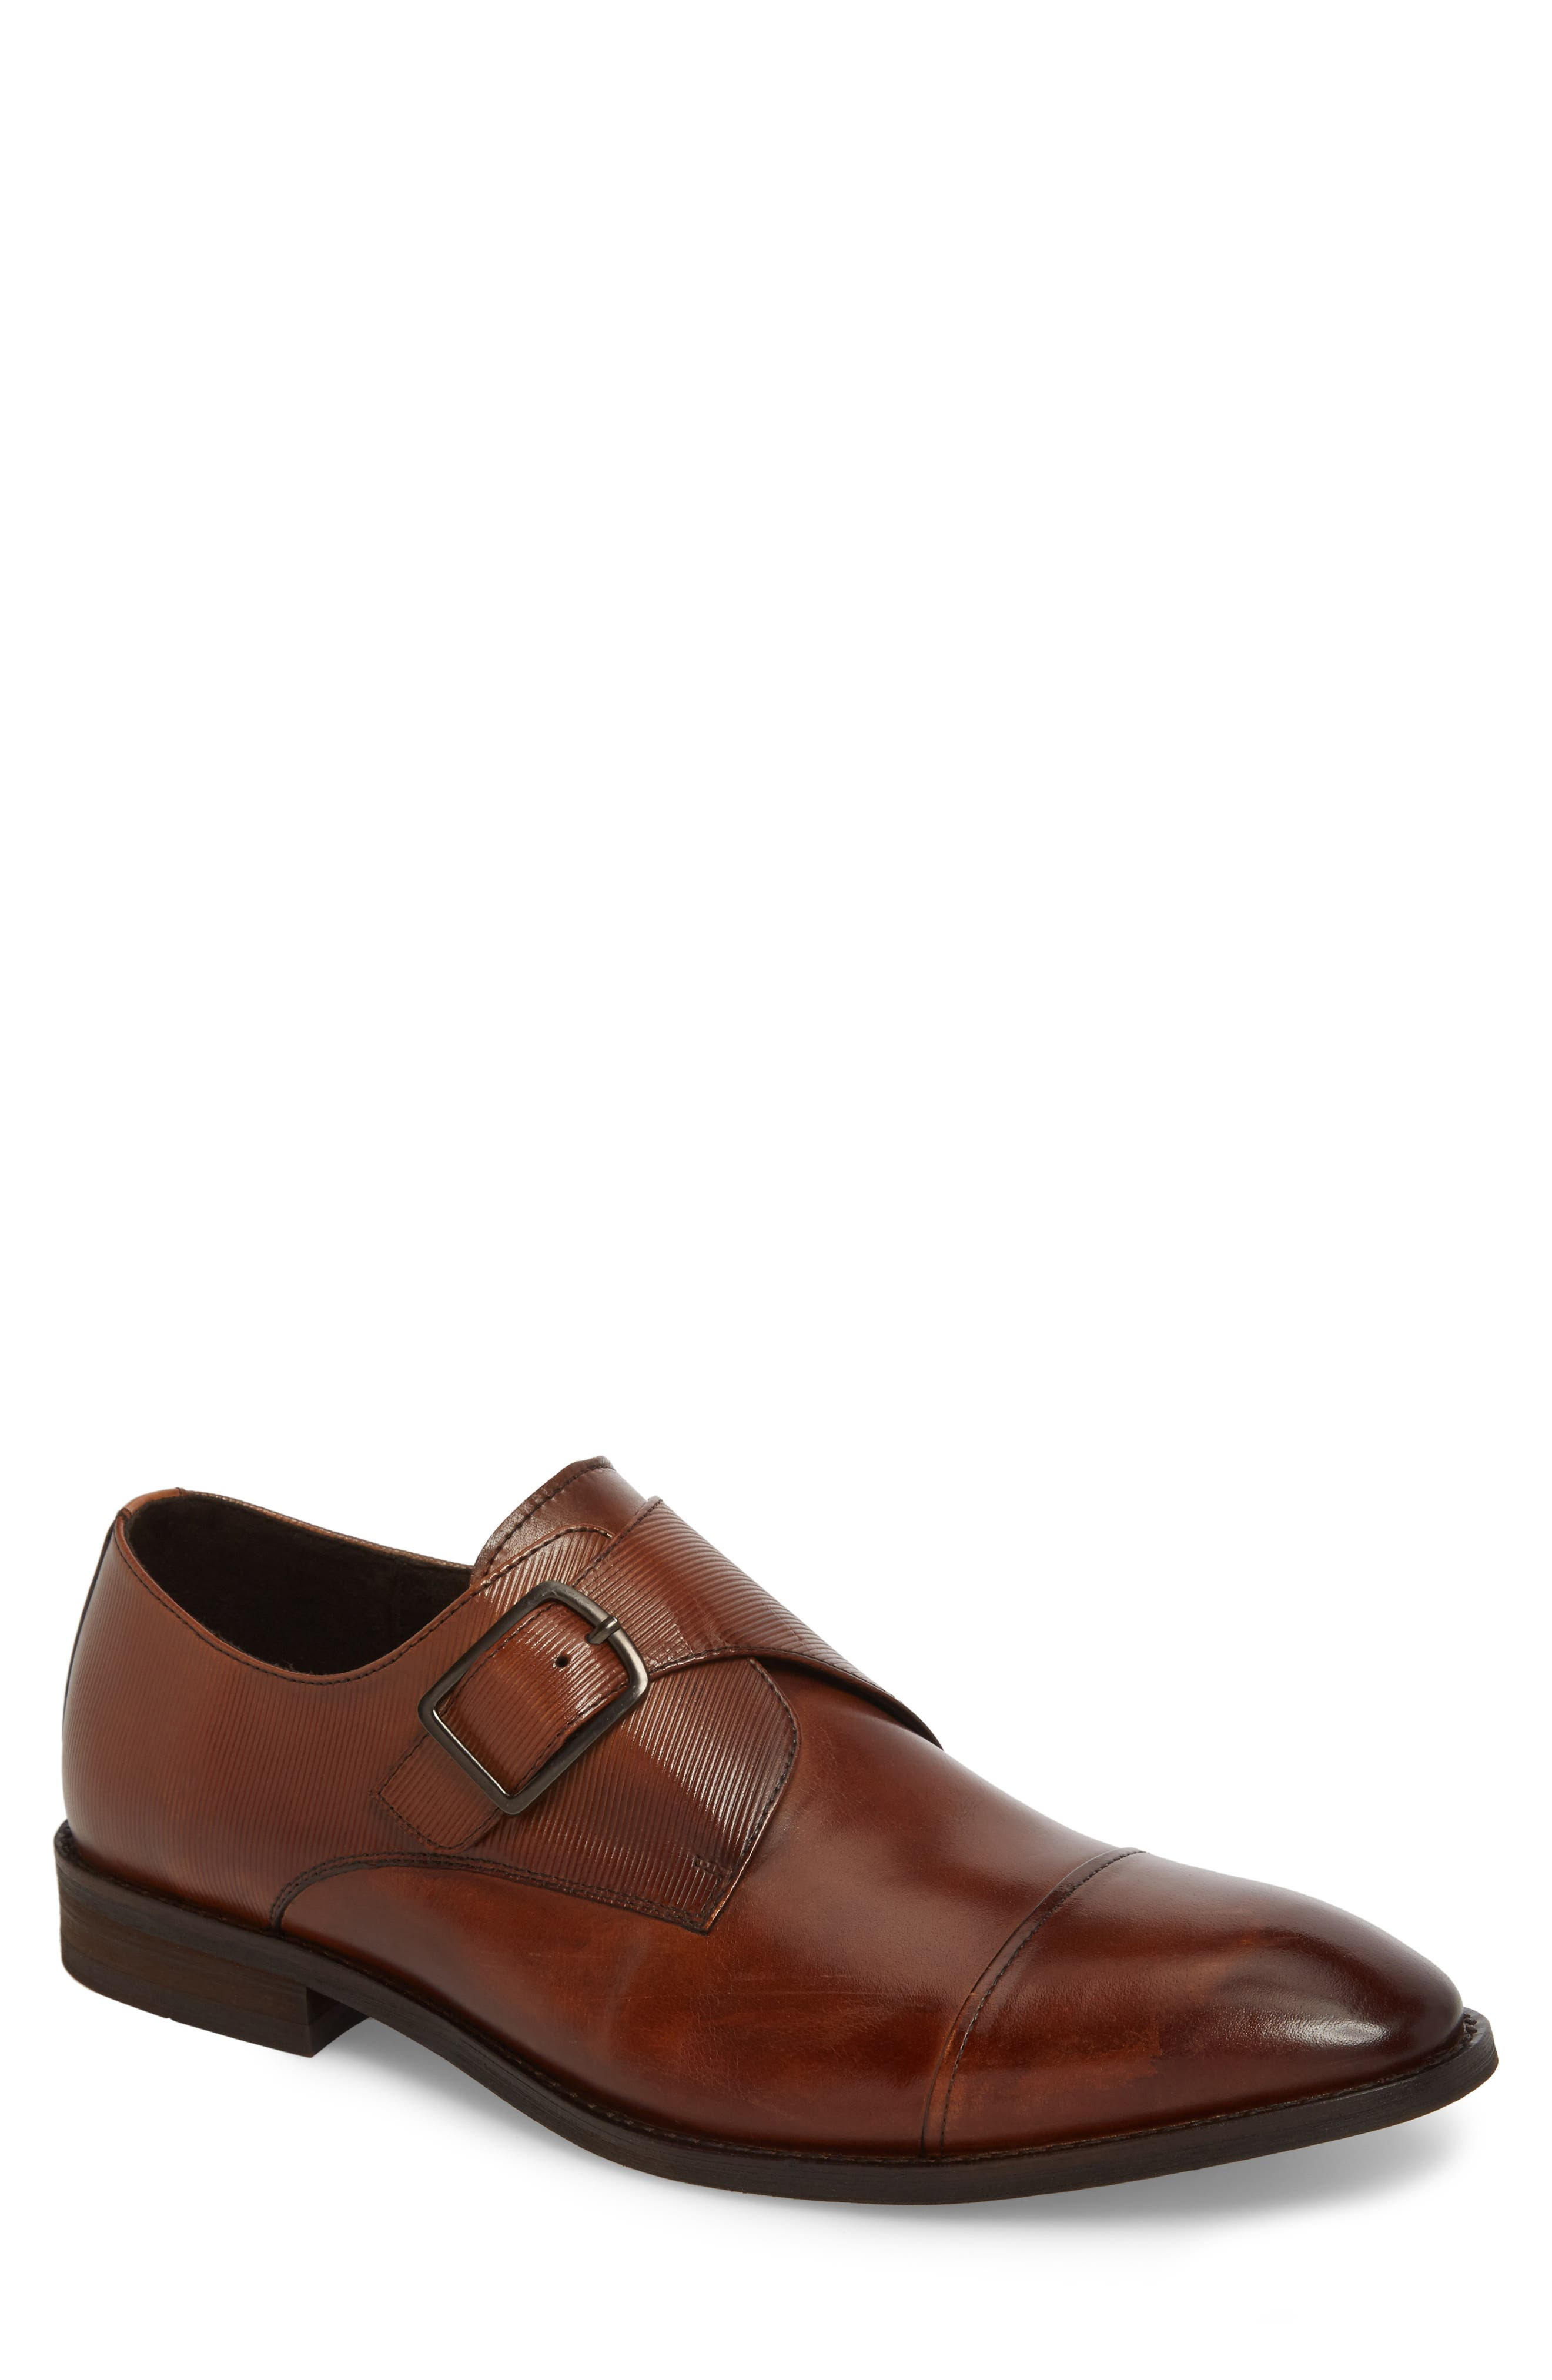 KENNETH COLE NEW YORK Courage Monk Strap Shoe, Main, color, 200